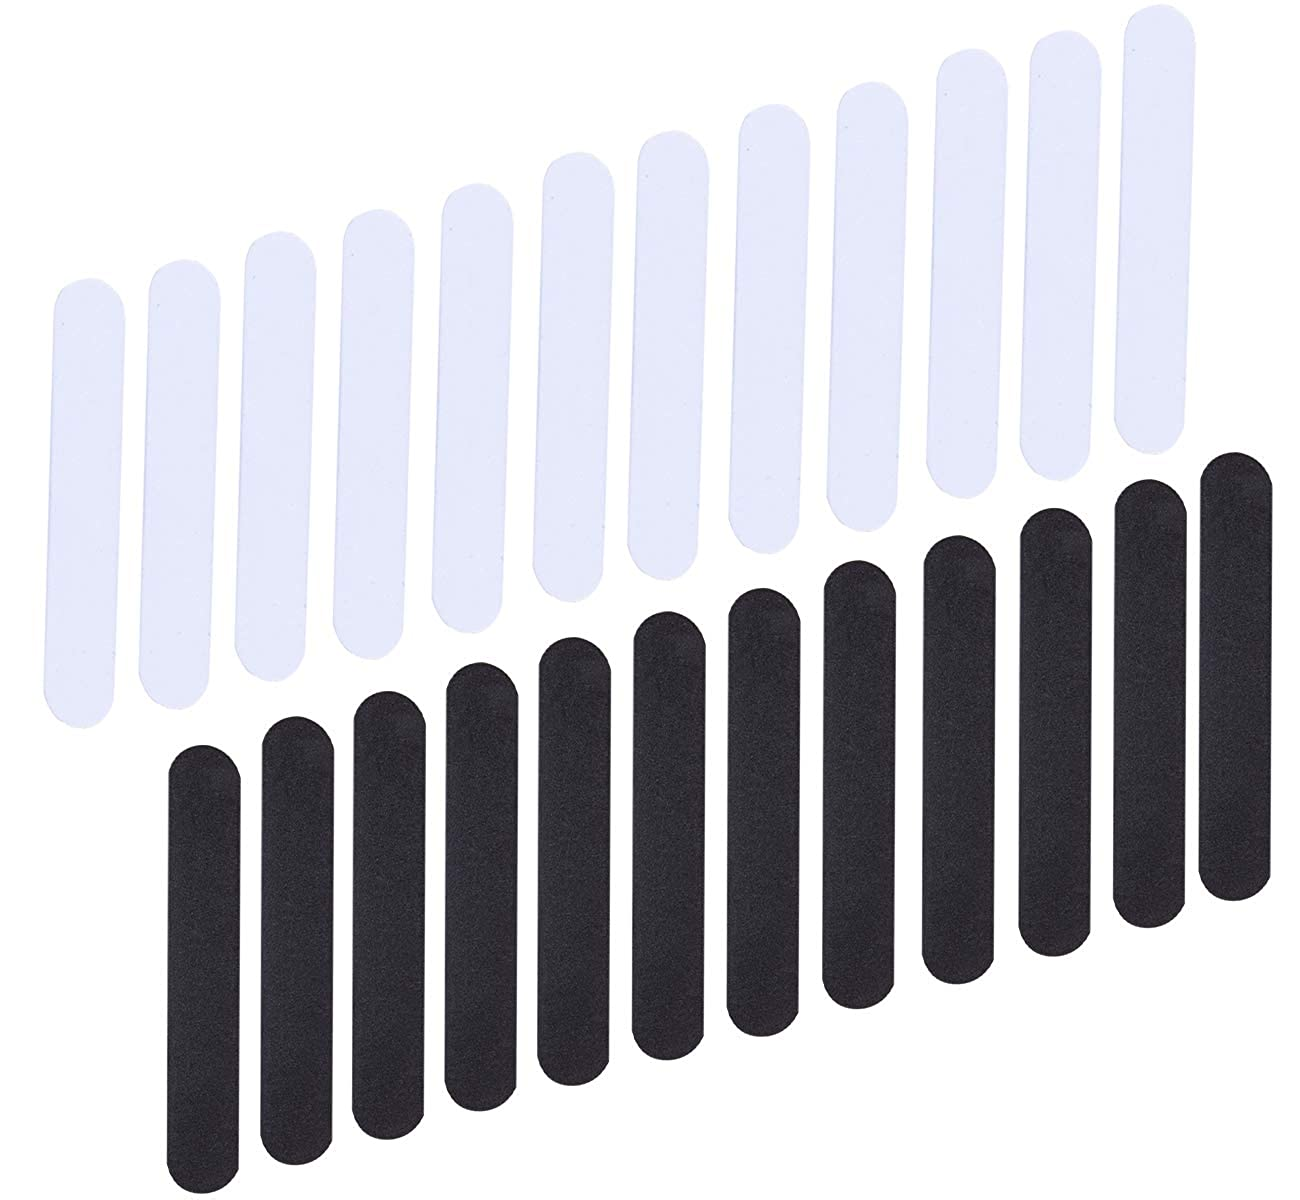 Auranso 24 Pieces Hat Size Reducer Sizing Tape Foam Hats Inserts Black and White